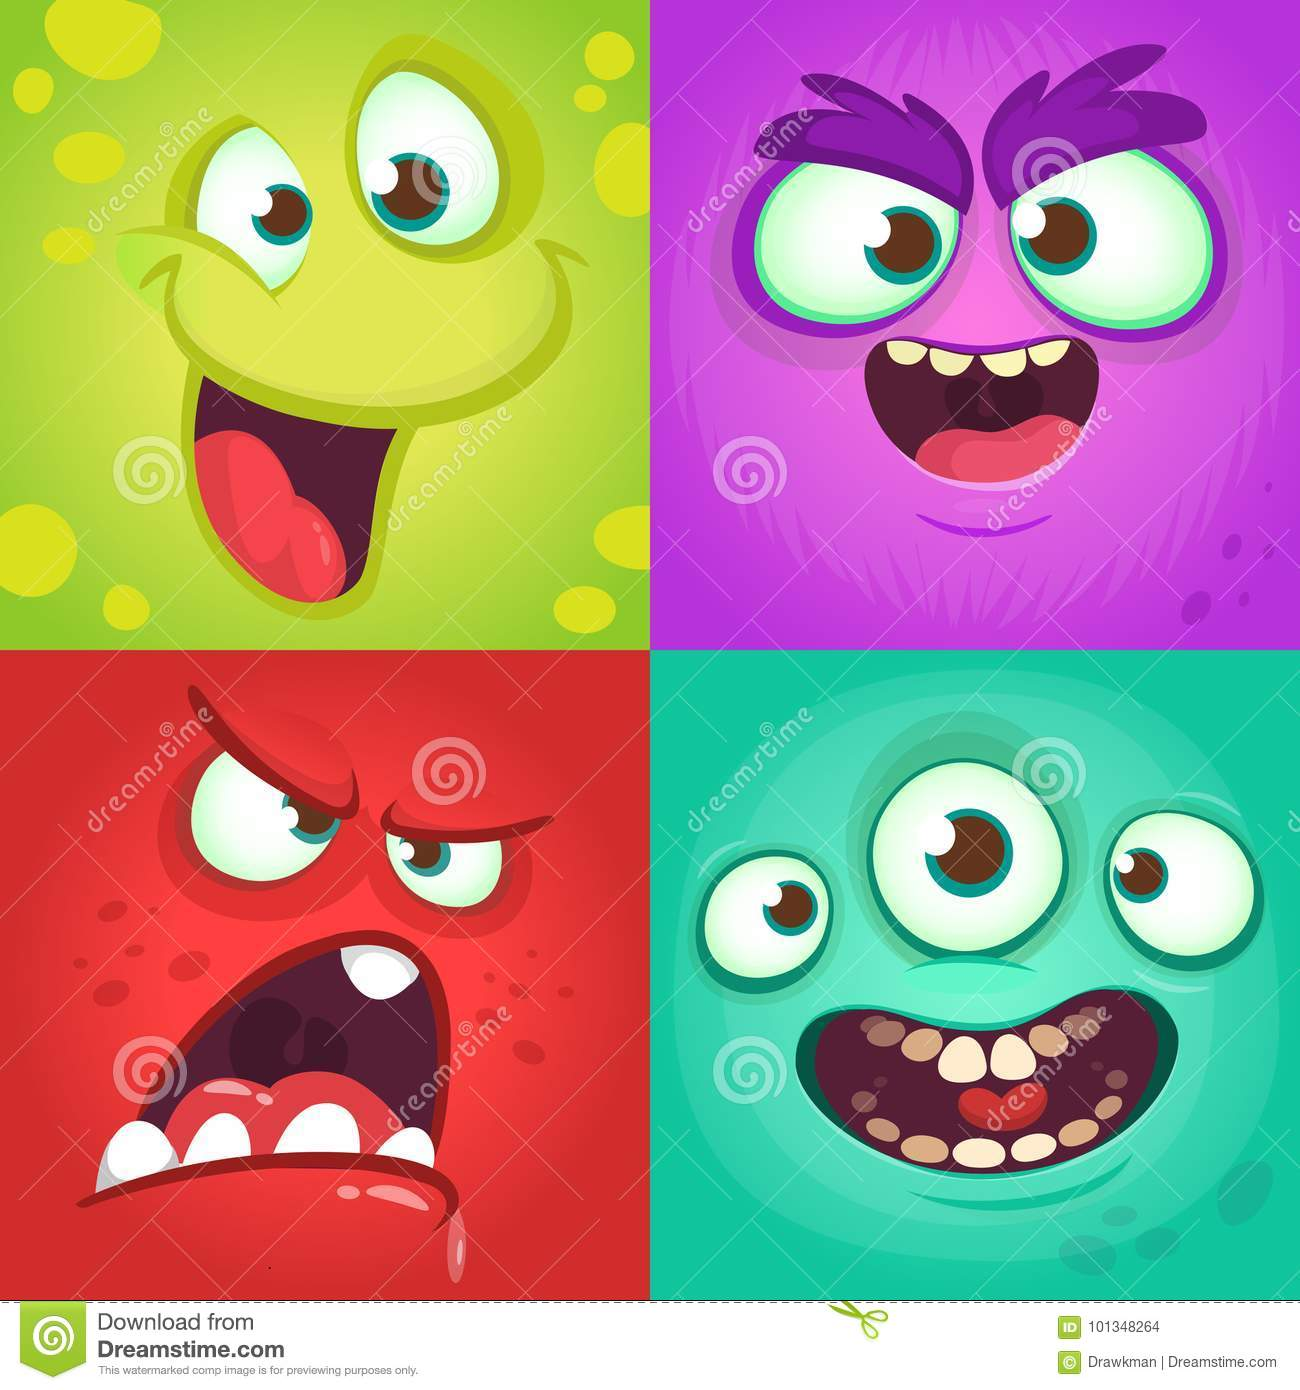 Cartoon monster faces set. Vector set of four Halloween monster faces with different expressions. Children book illustrations